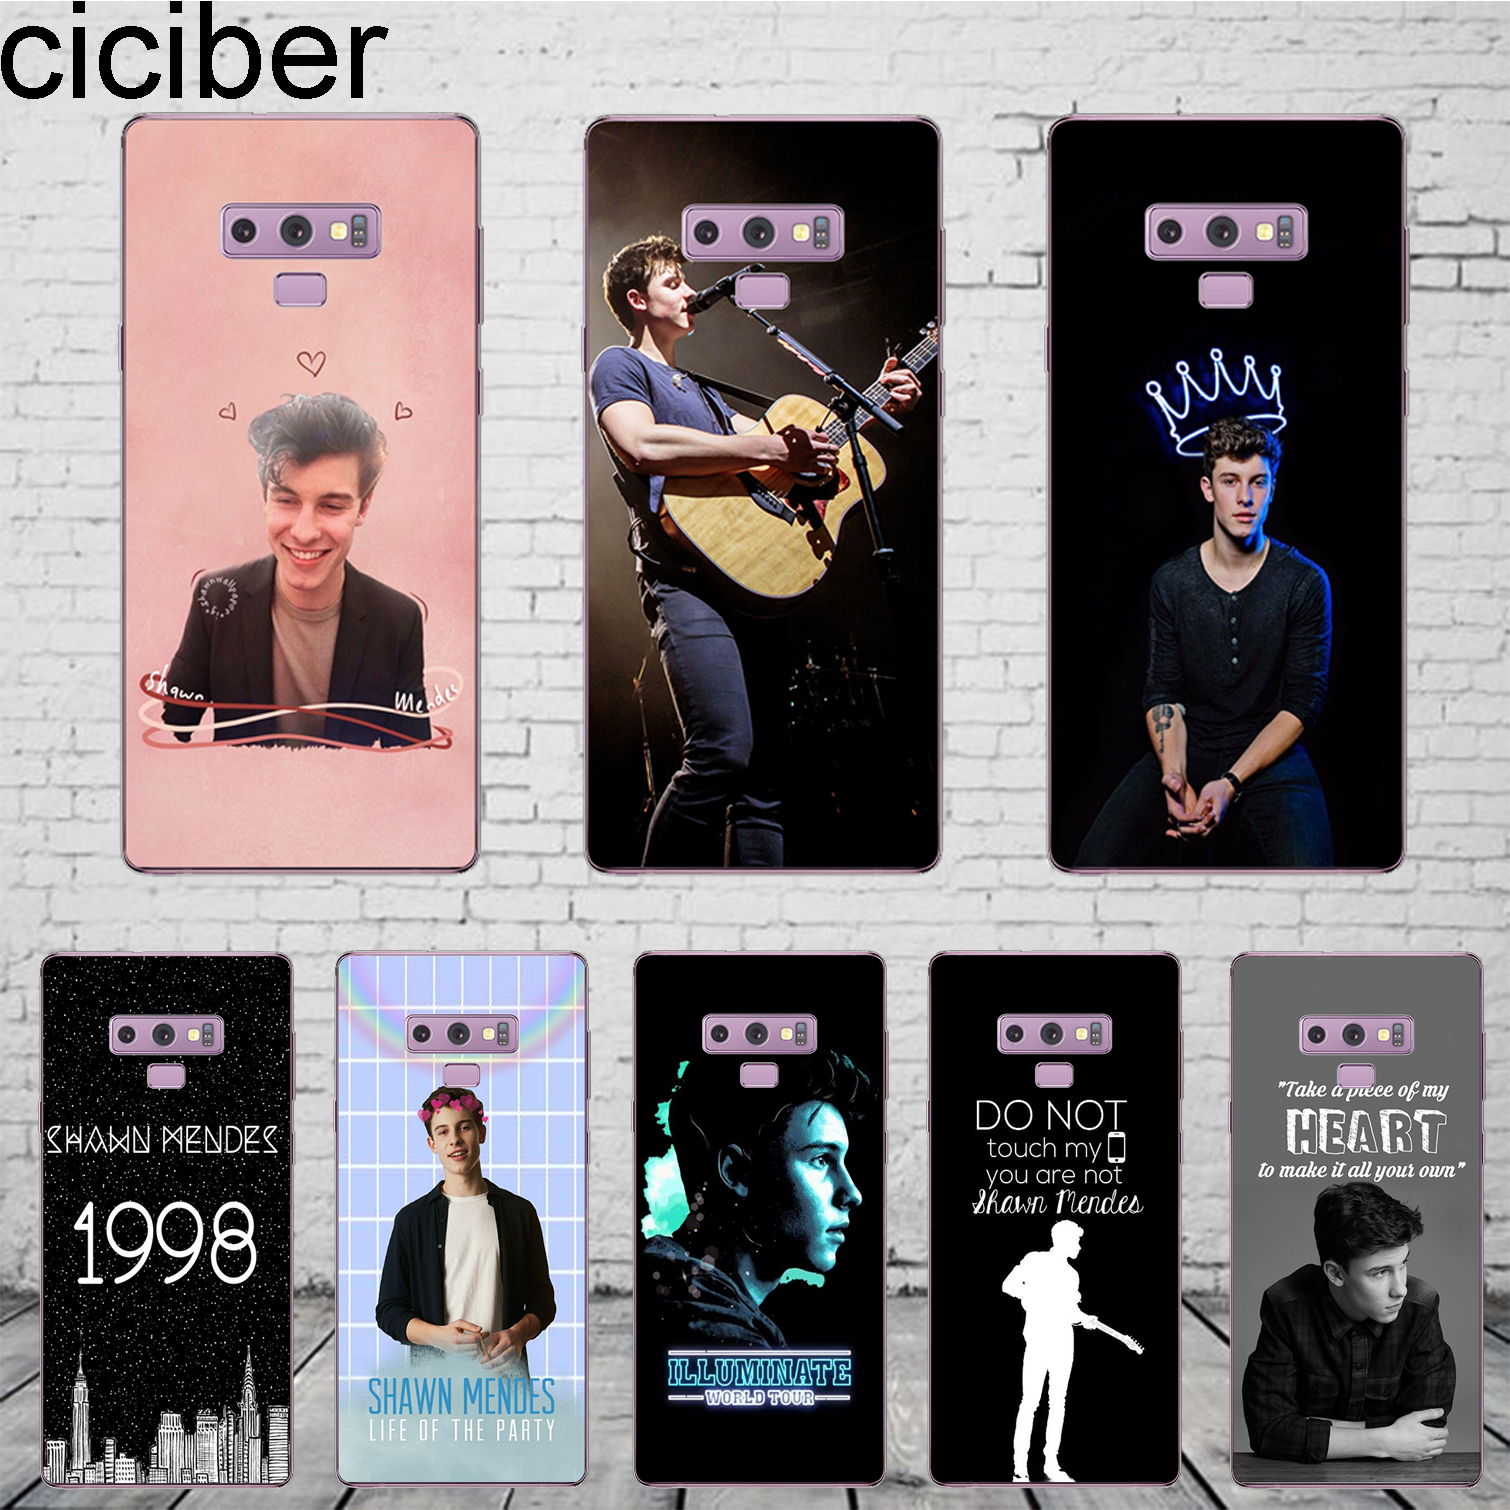 ccbe7c7f2535 ciciber Singer Shawn Mendes Coque For Samsung Galaxy S 5 6 7 8 9 Edge Plus  Phone Case For Galaxy Note 4 5 8 9 Cover Soft TPU